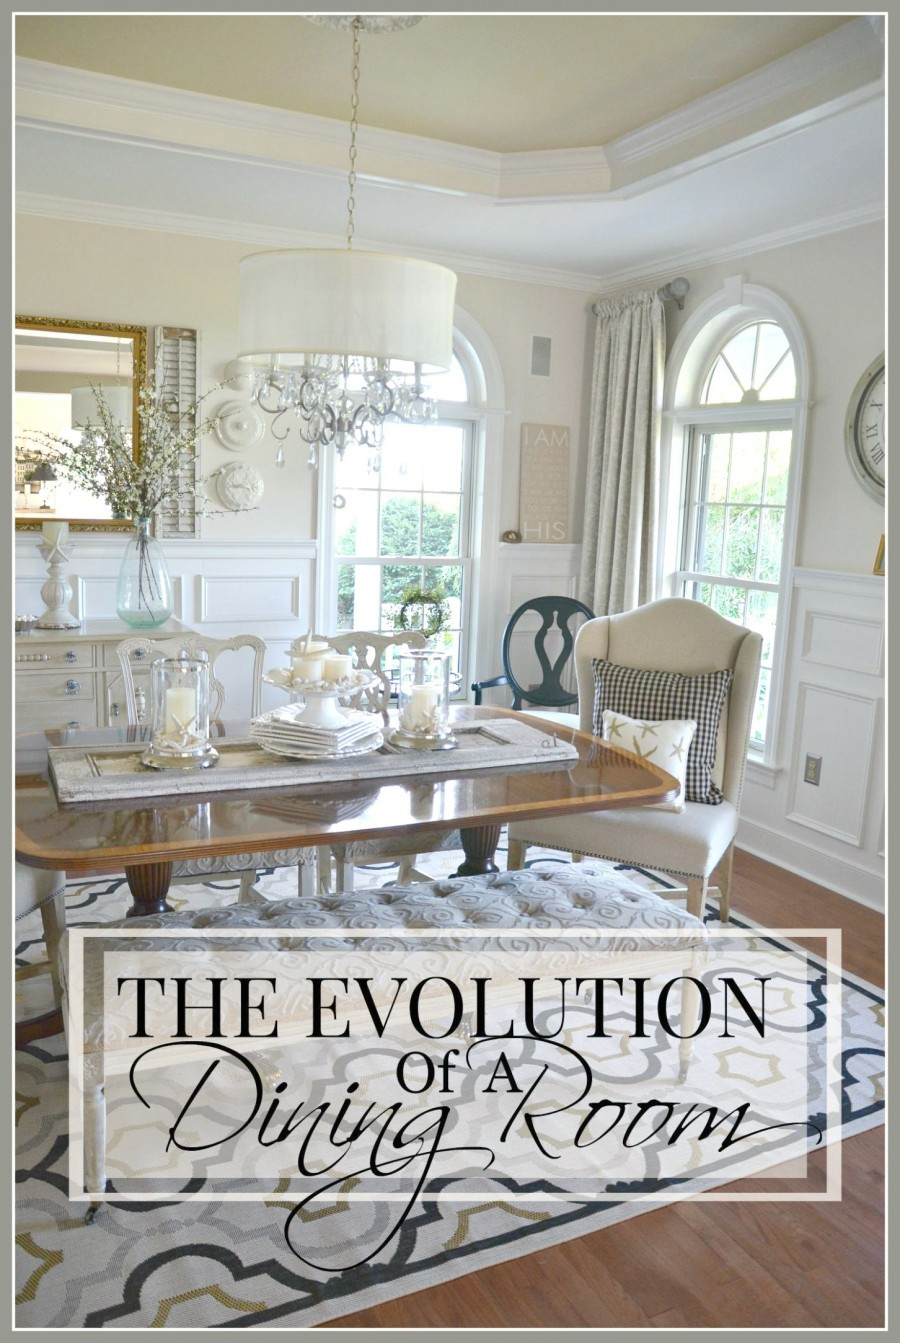 THE EVOLUTION OF A DINING ROOM